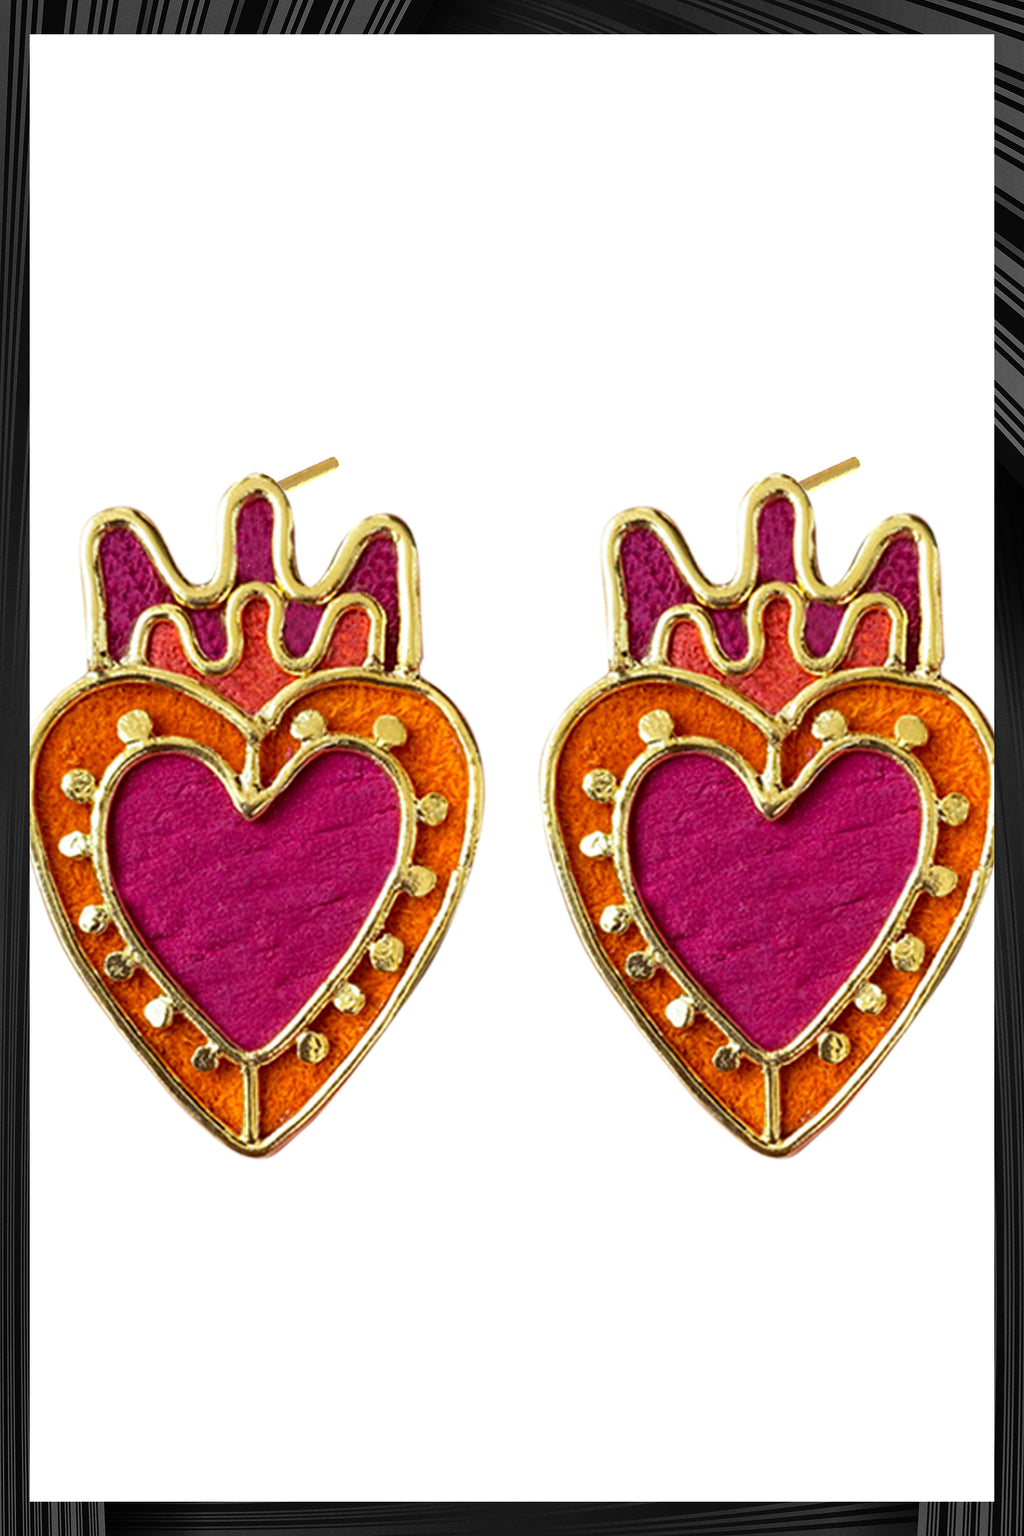 Corazon Y Punto Studs | Free Delivery - 3 Week Shipping